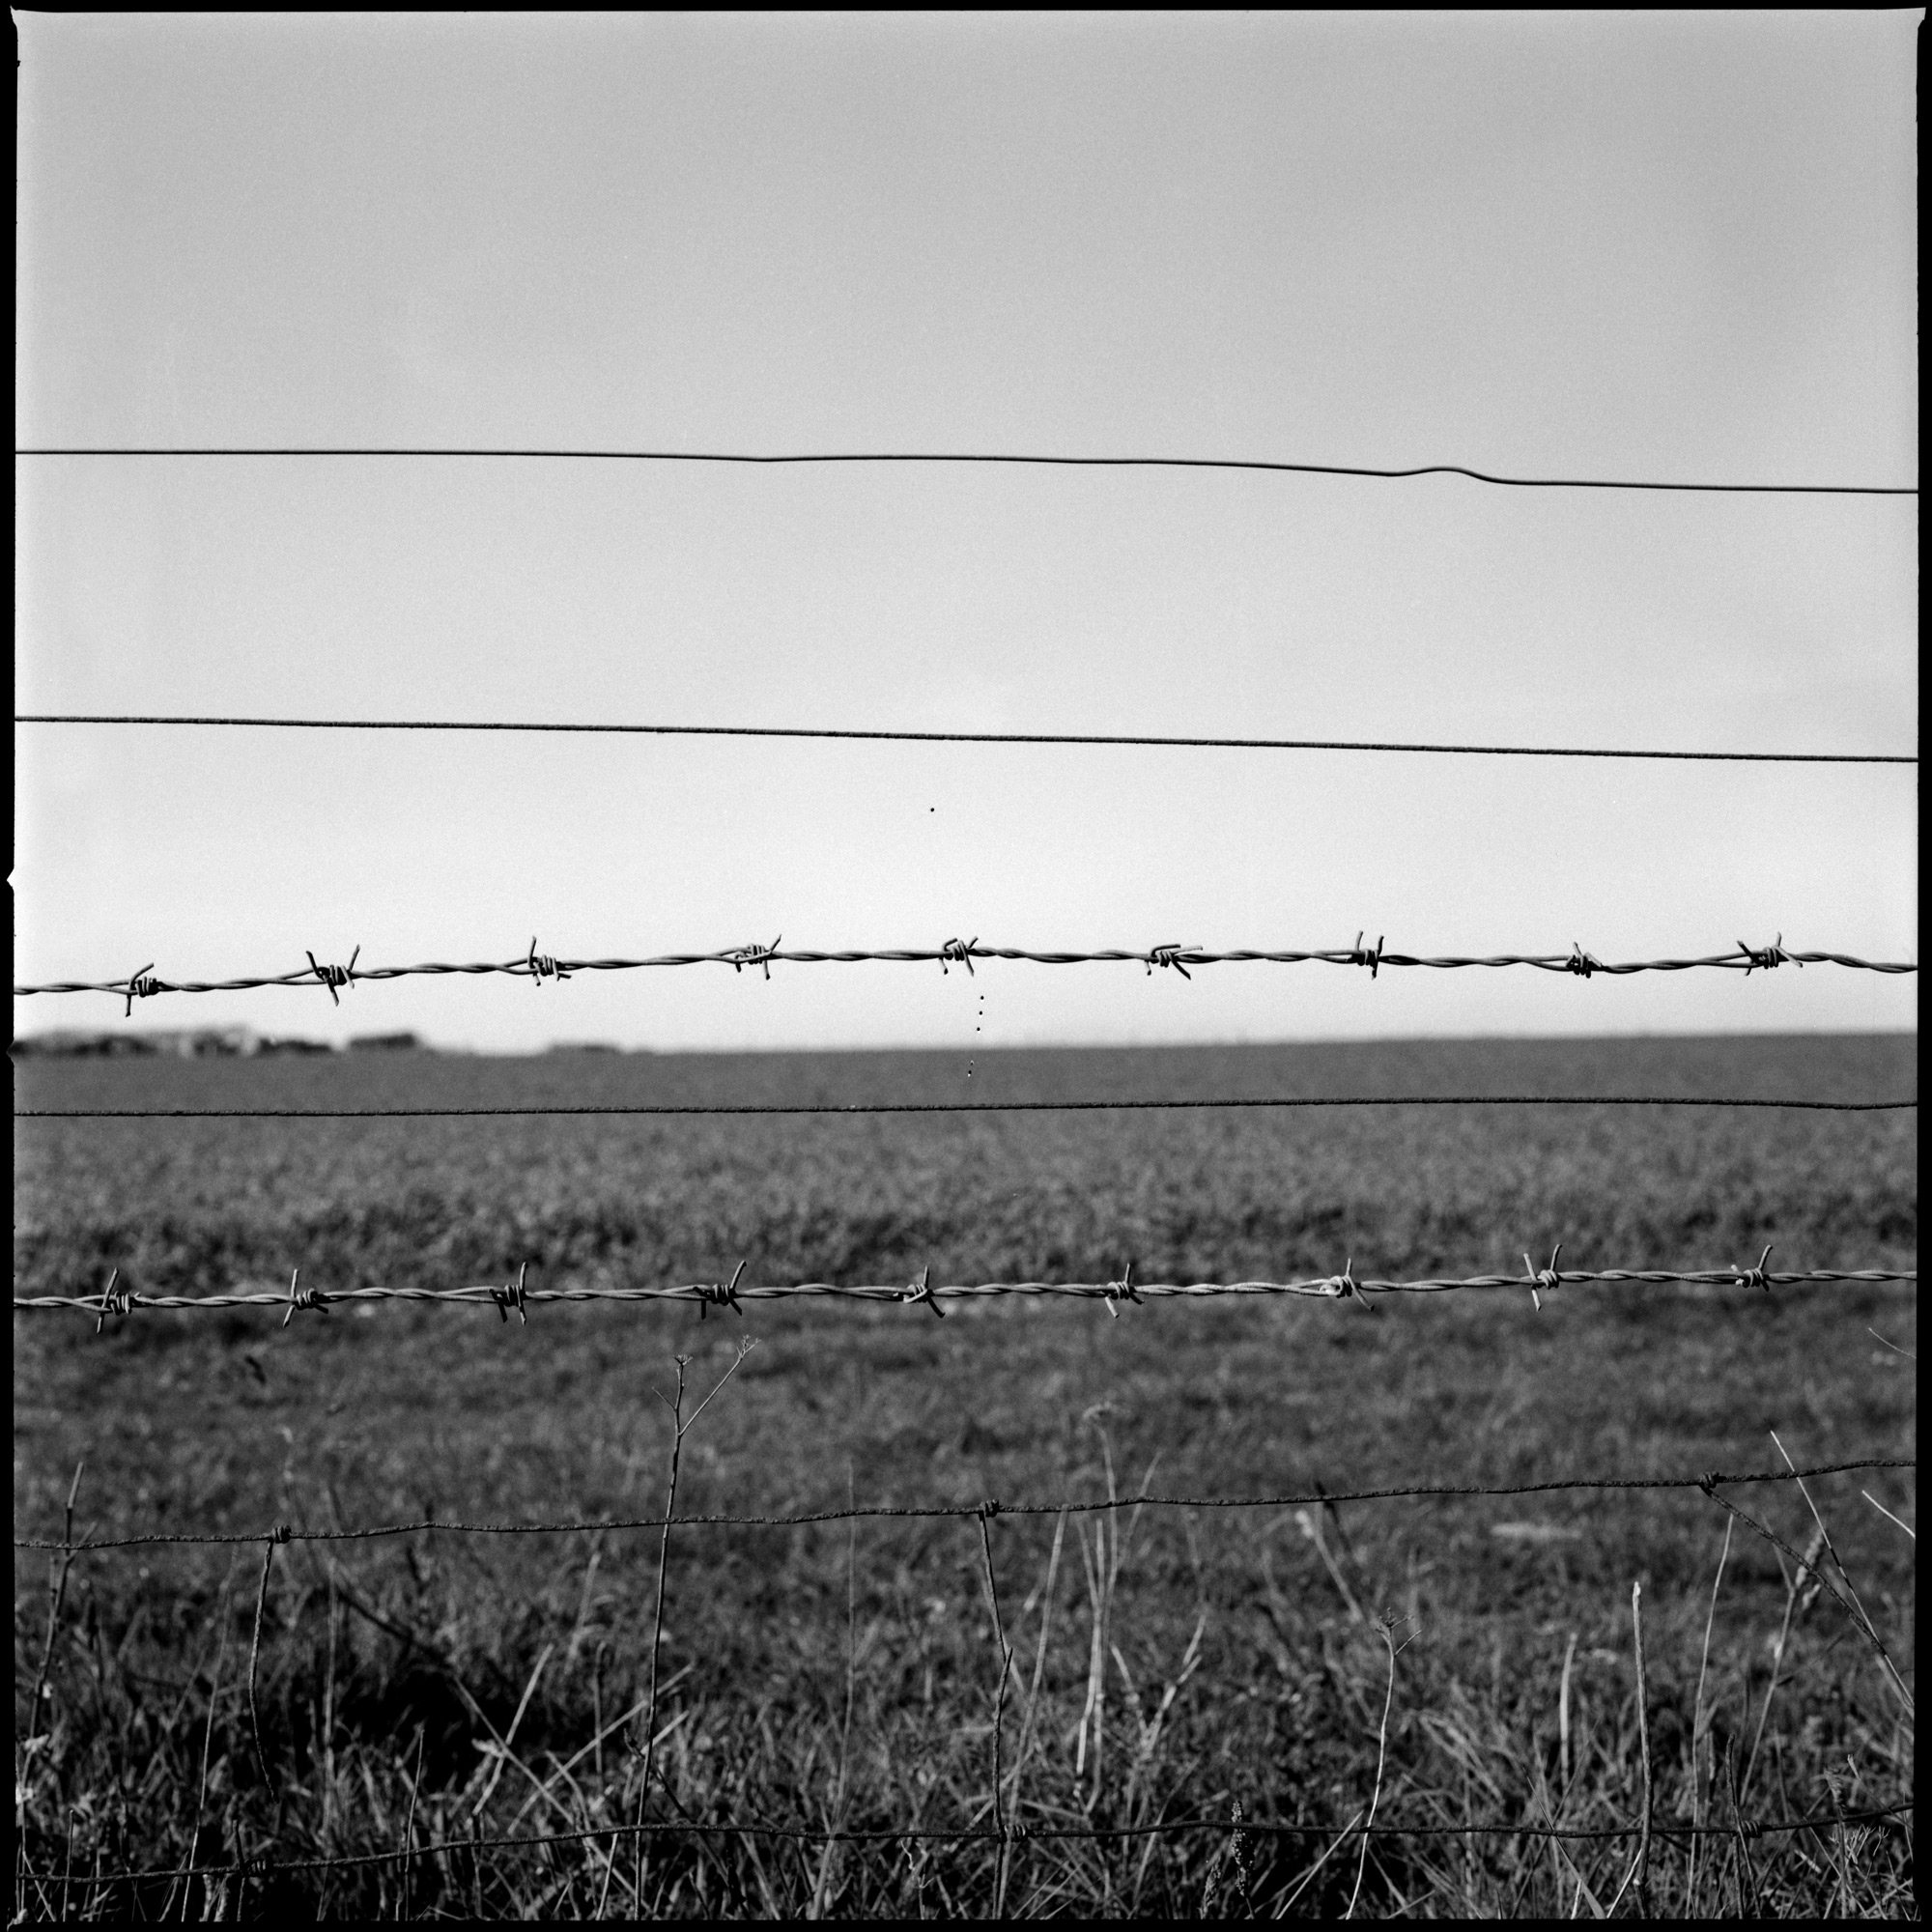 Barb Wire Fence, Observations Series, Photography By Ioannis Koussertari